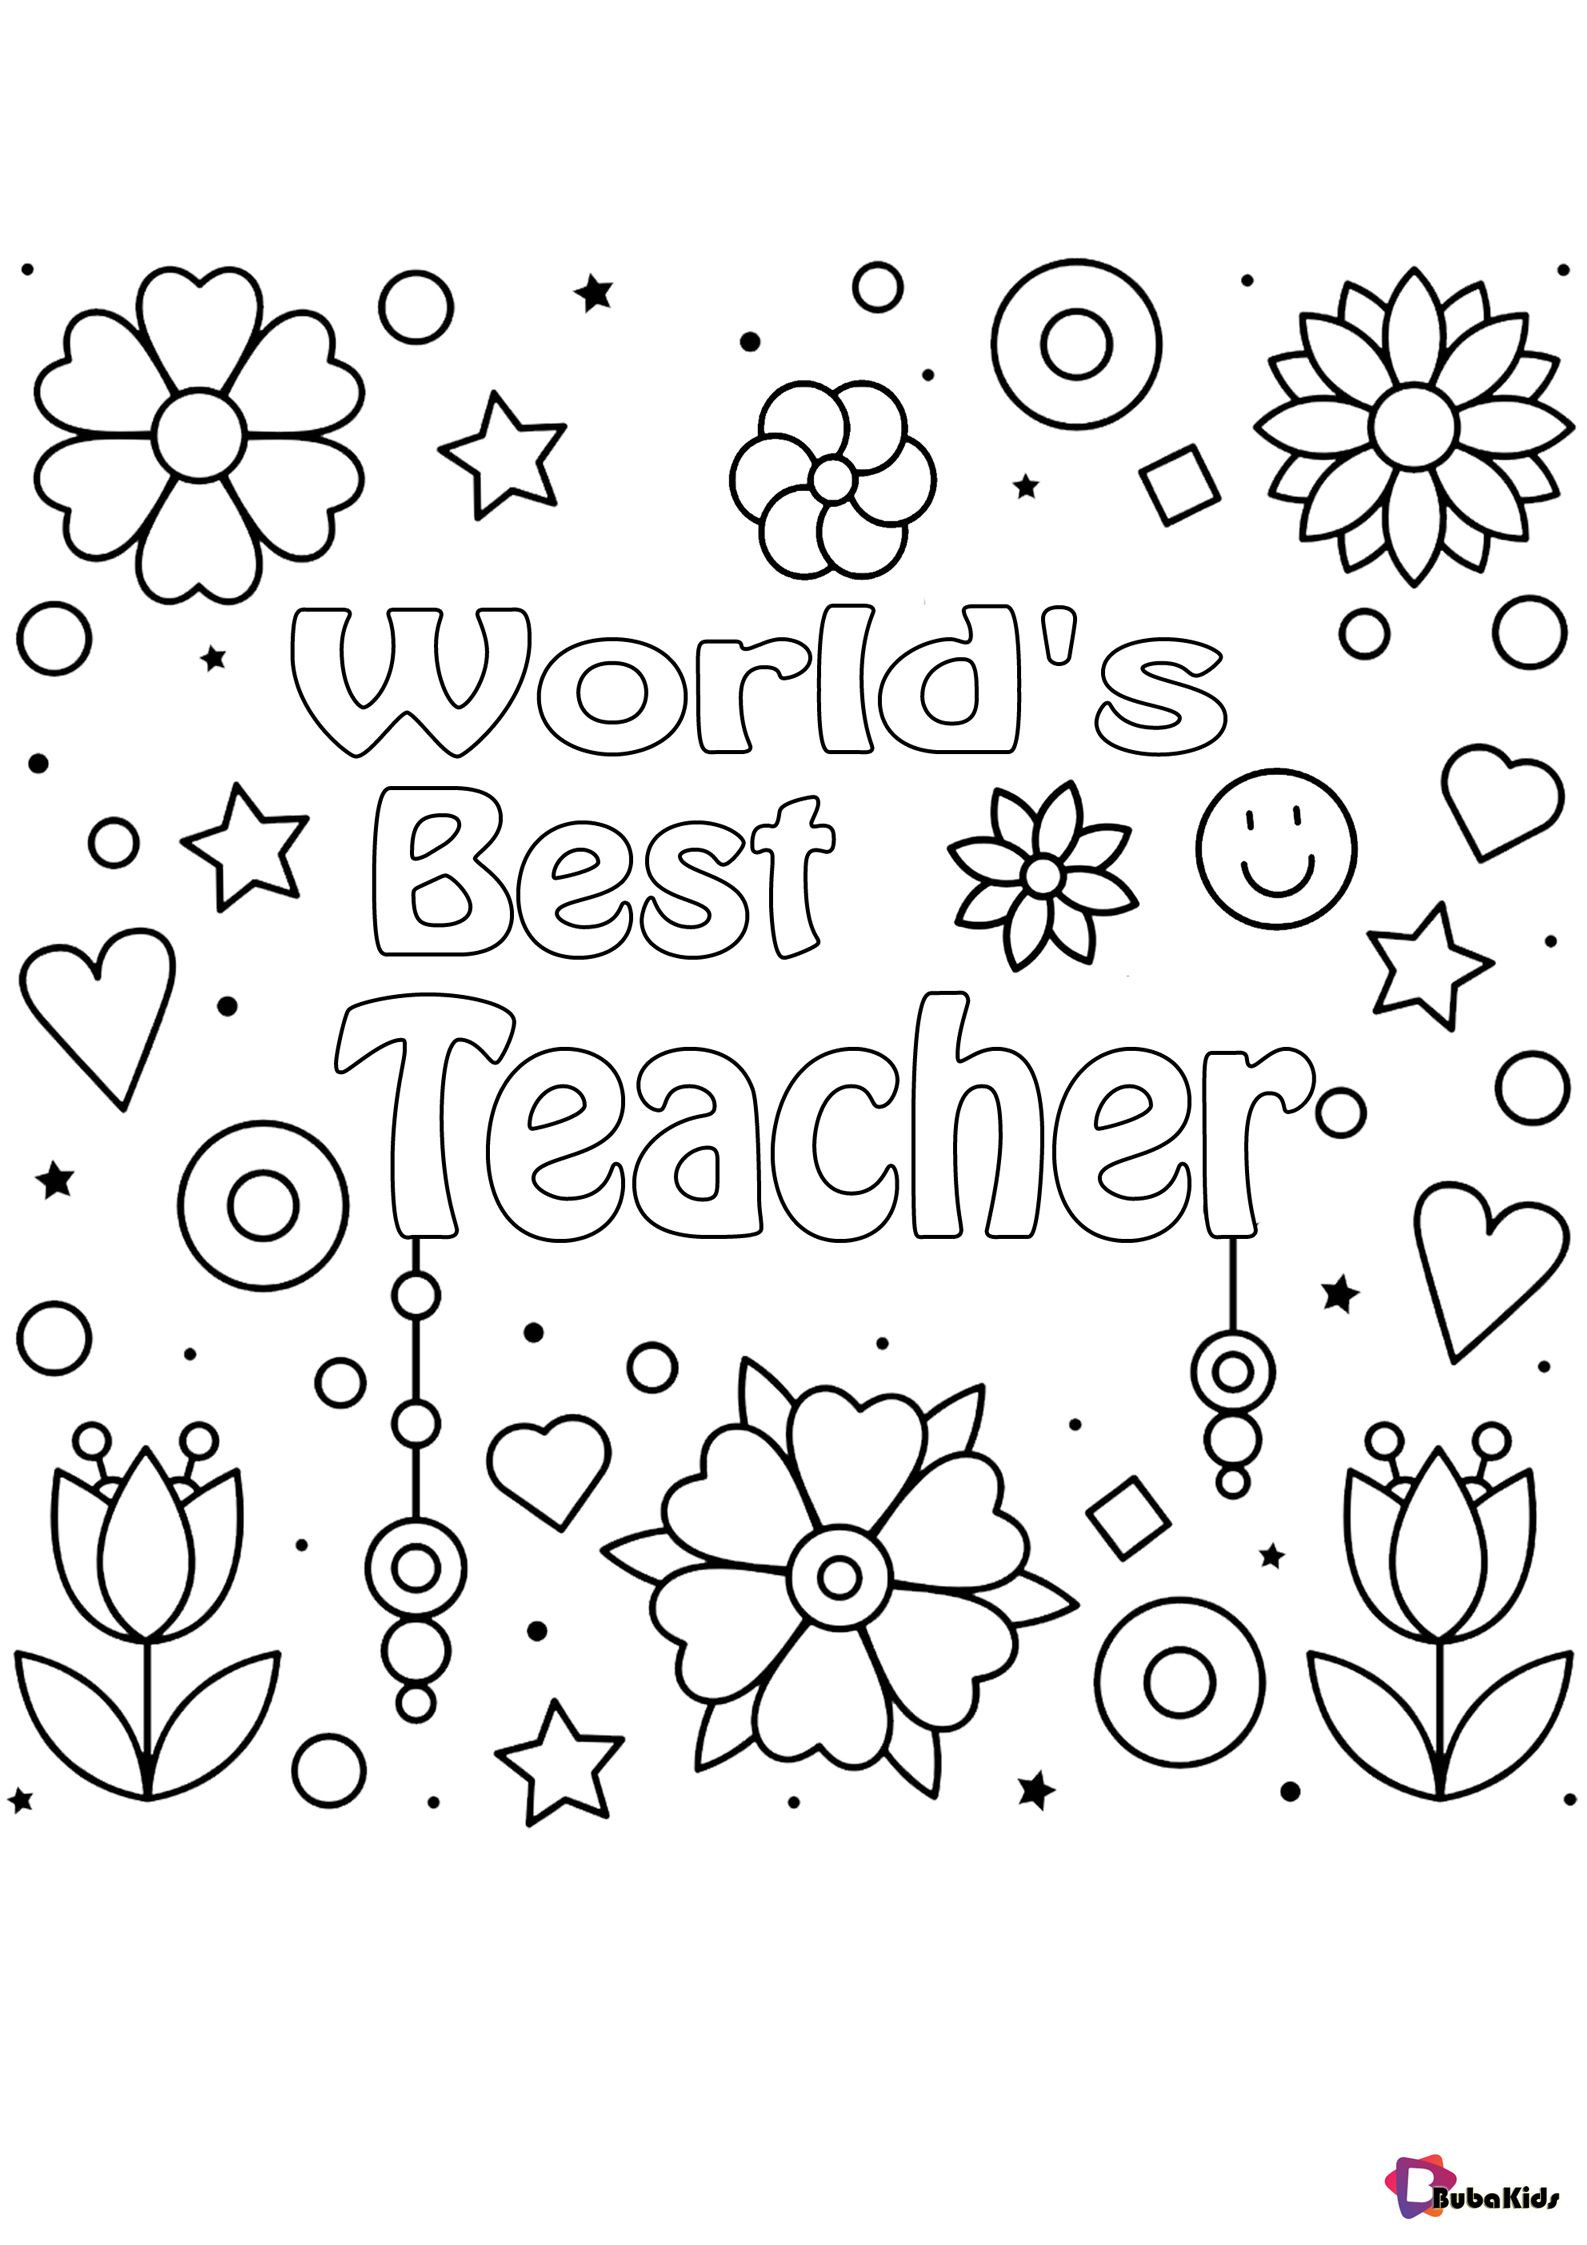 Teacher Appreciation Day Coloring Pages Flowers Hearts Collection Of Dinosaurs Coloring Pages F Mothers Day Coloring Pages Coloring Pages Heart Coloring Pages